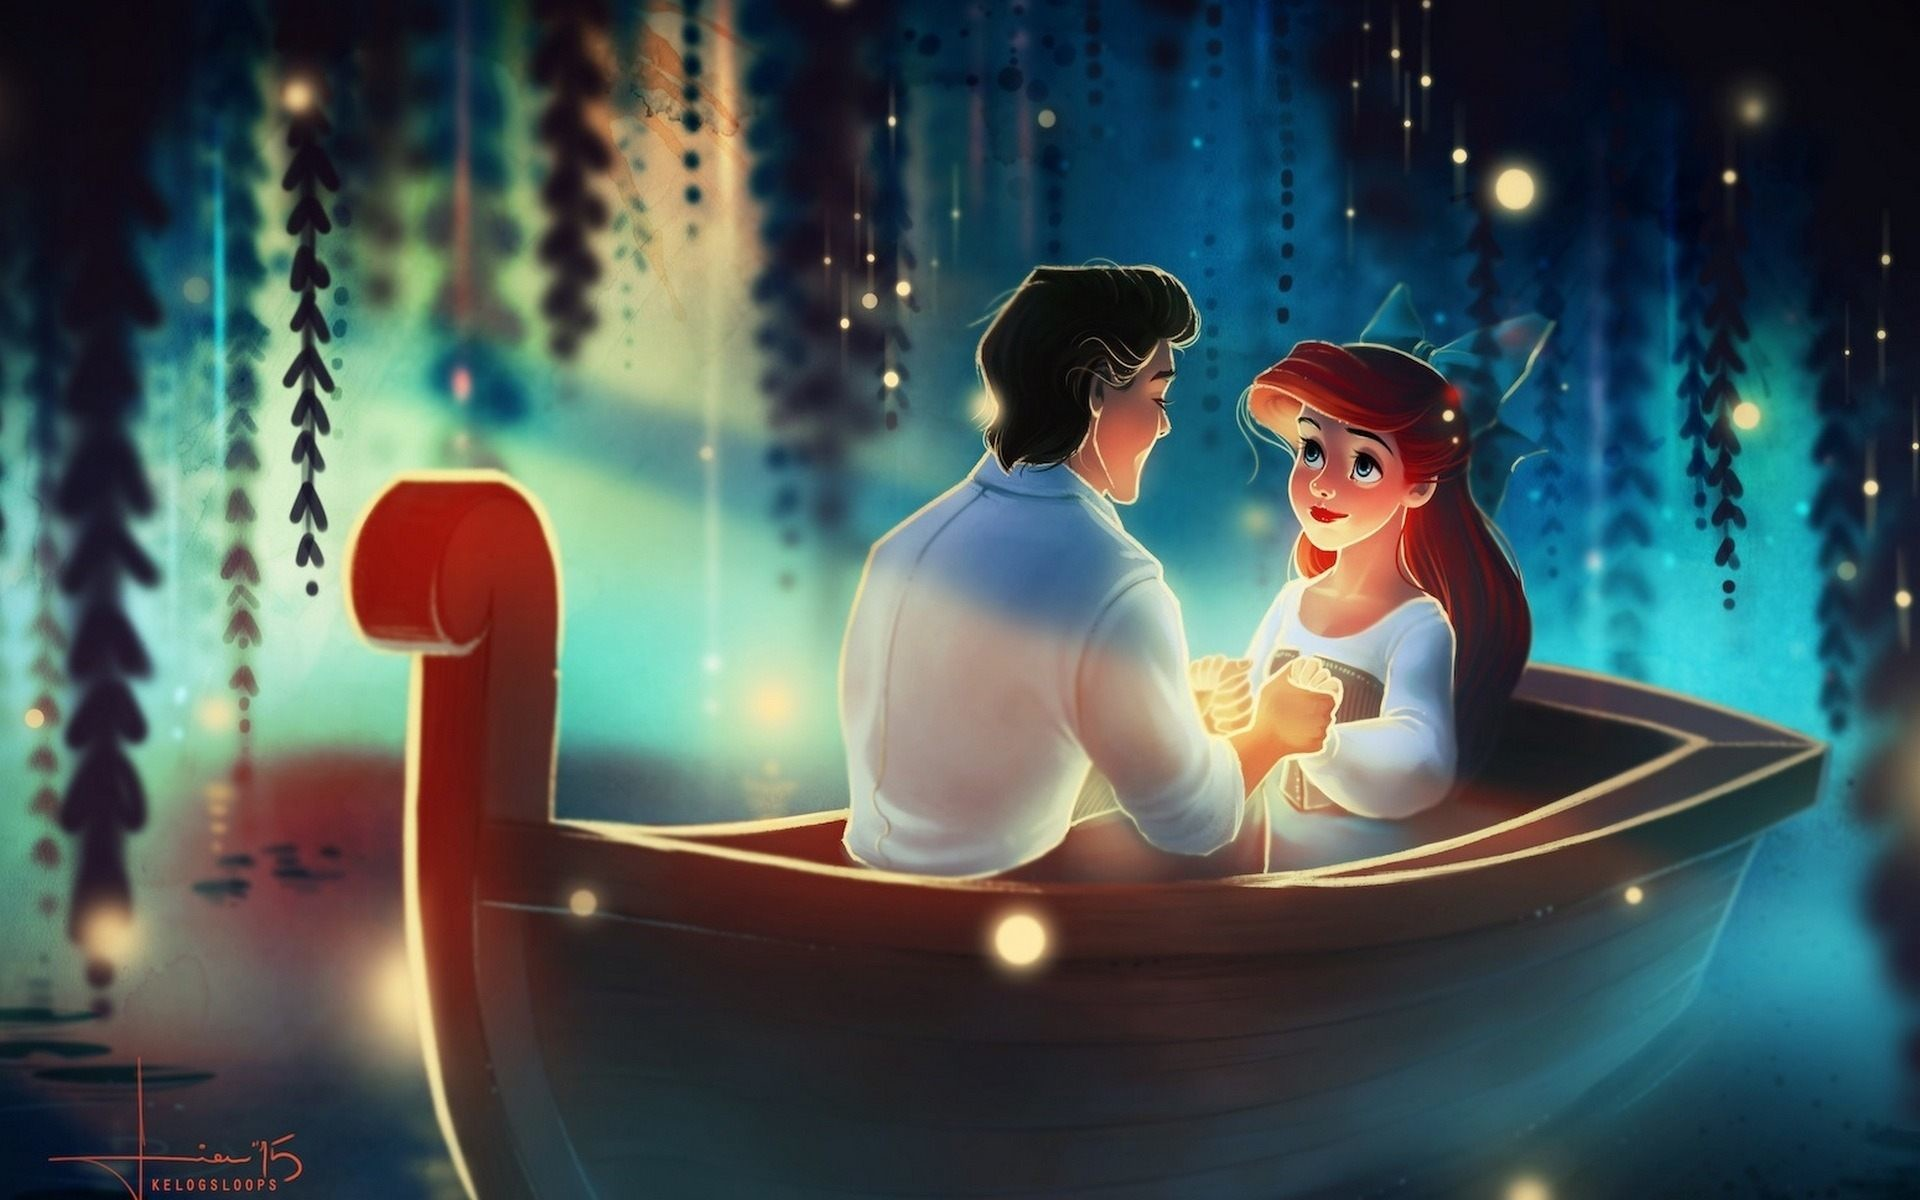 … Ariel and Eric The Little Mermaid Movie Wallpaper HD Download